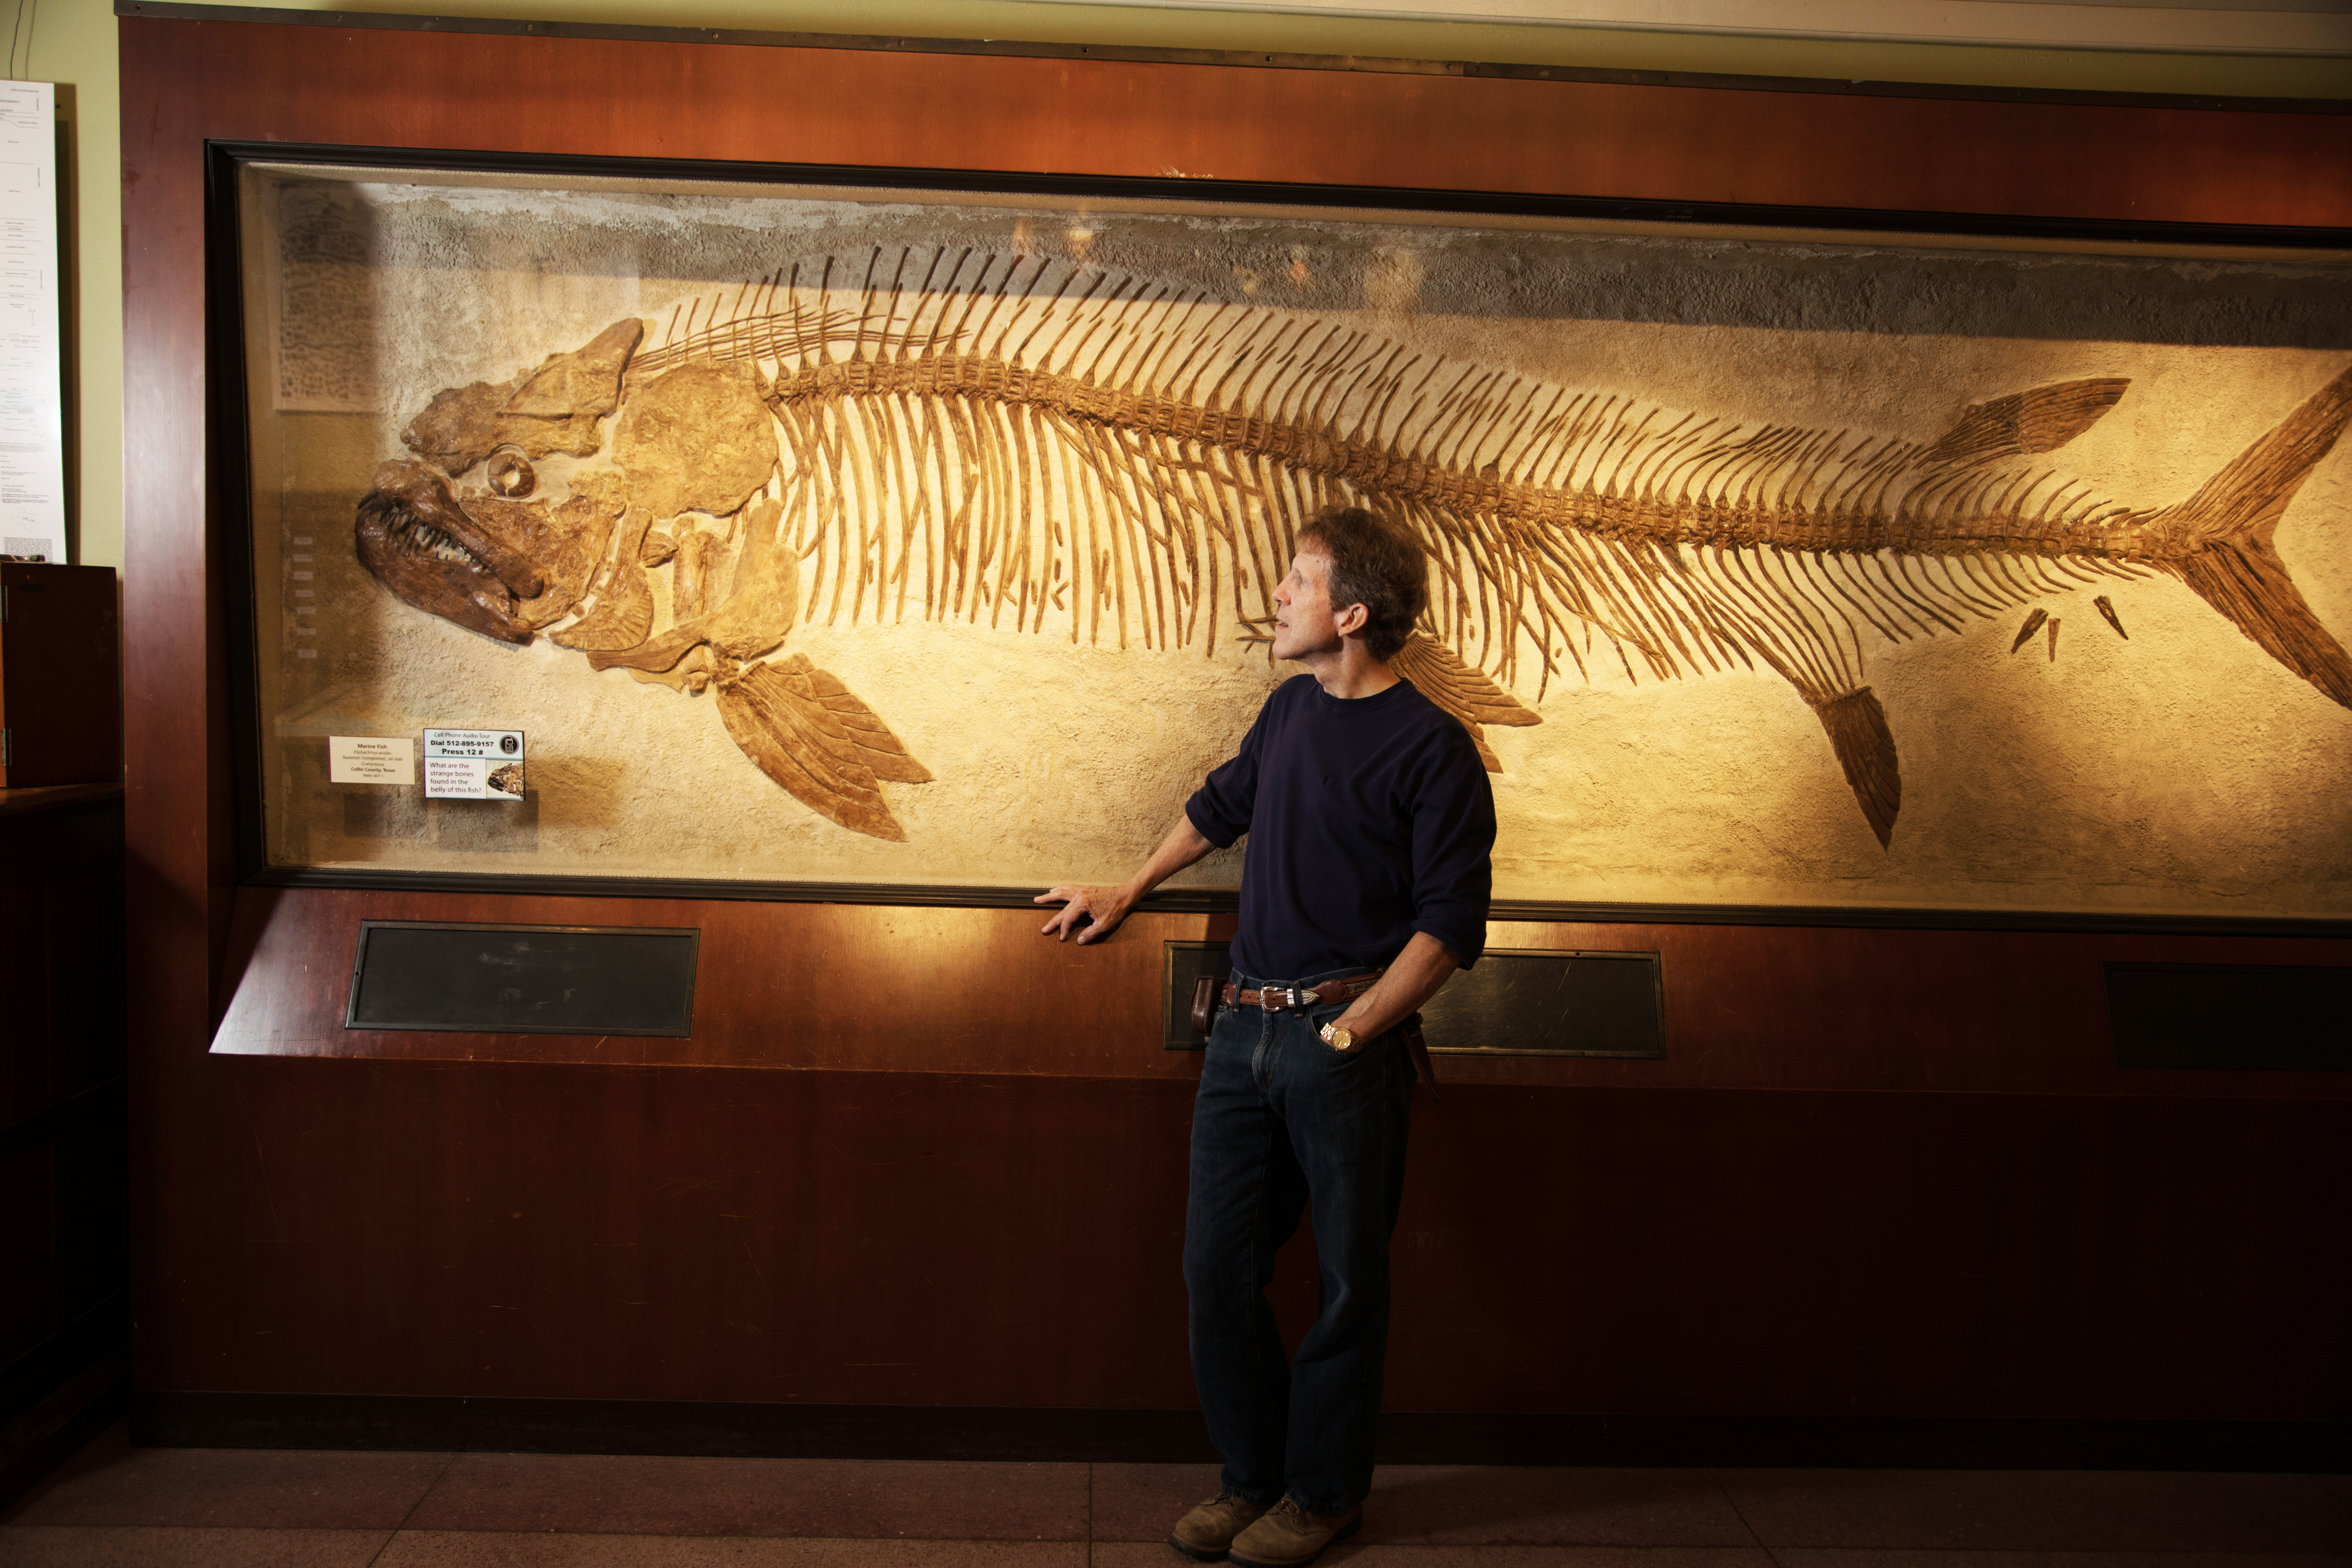 Neil Bockoven with Fossil